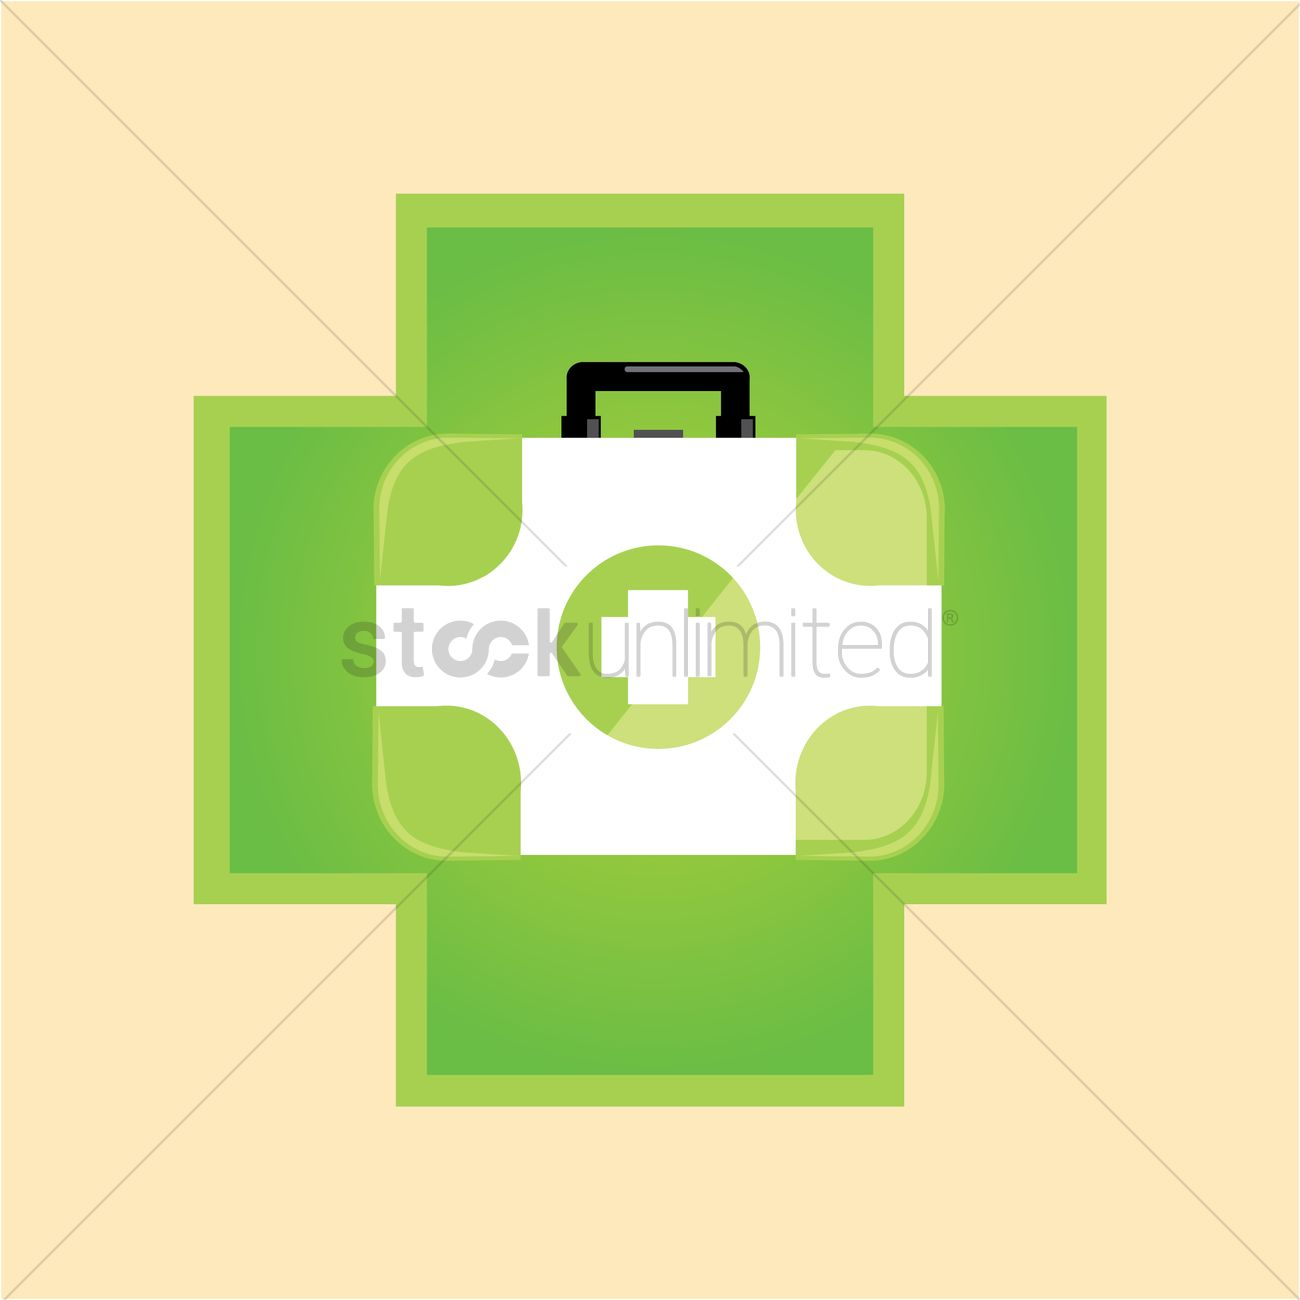 Free First aid kit on a cross Vector Image - 1239680 | StockUnlimited